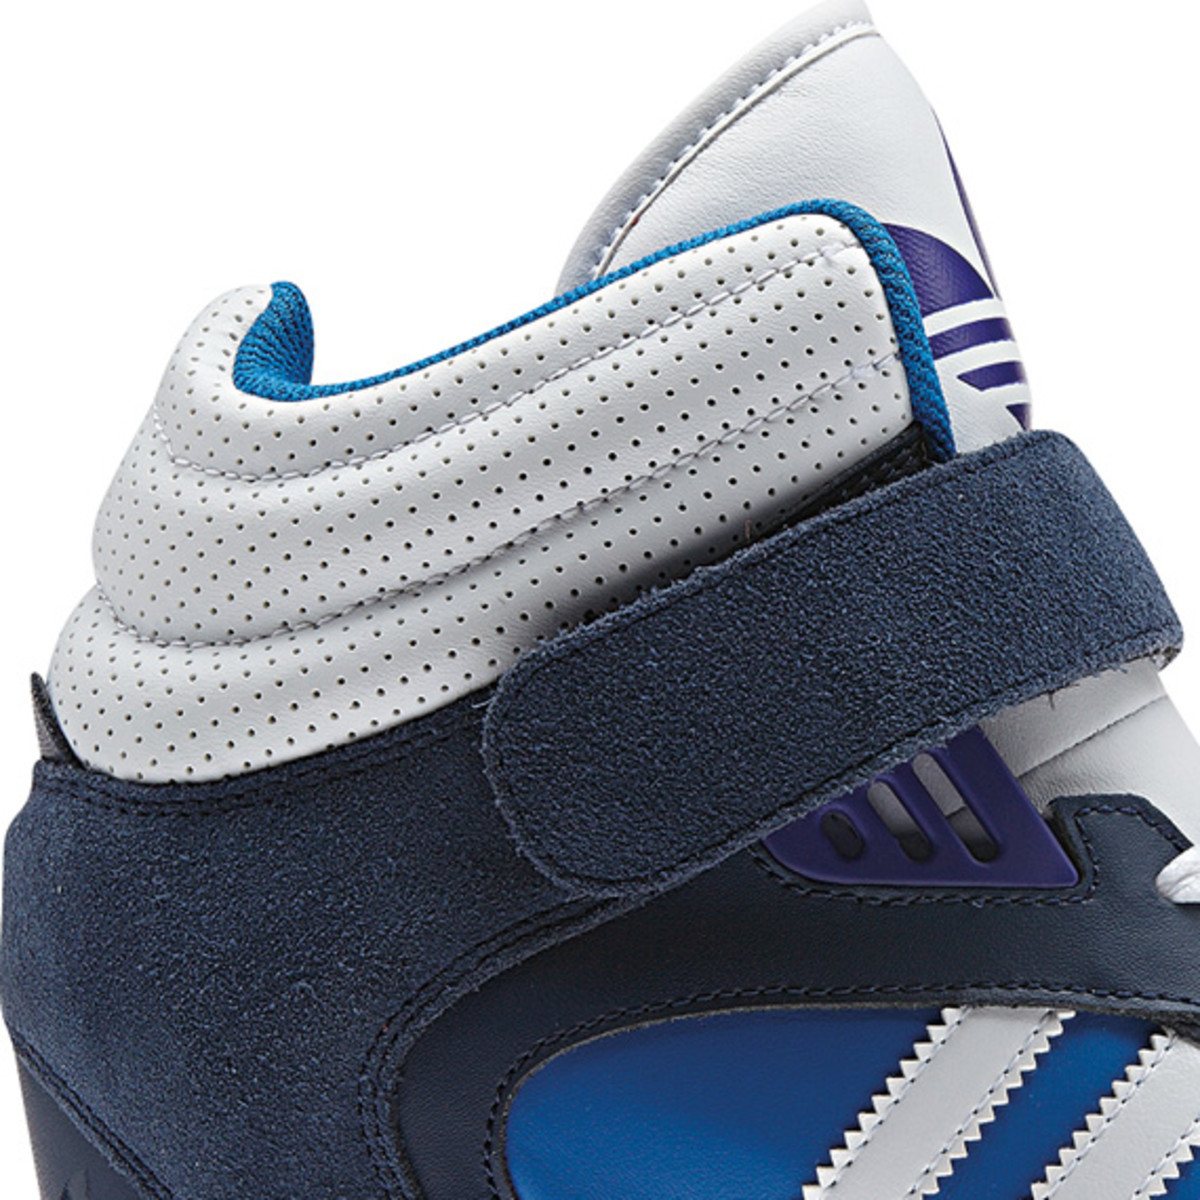 adidas-originals-womens-amberlight-up-sneaker-wedge-fall-winter-2013-g95640-05